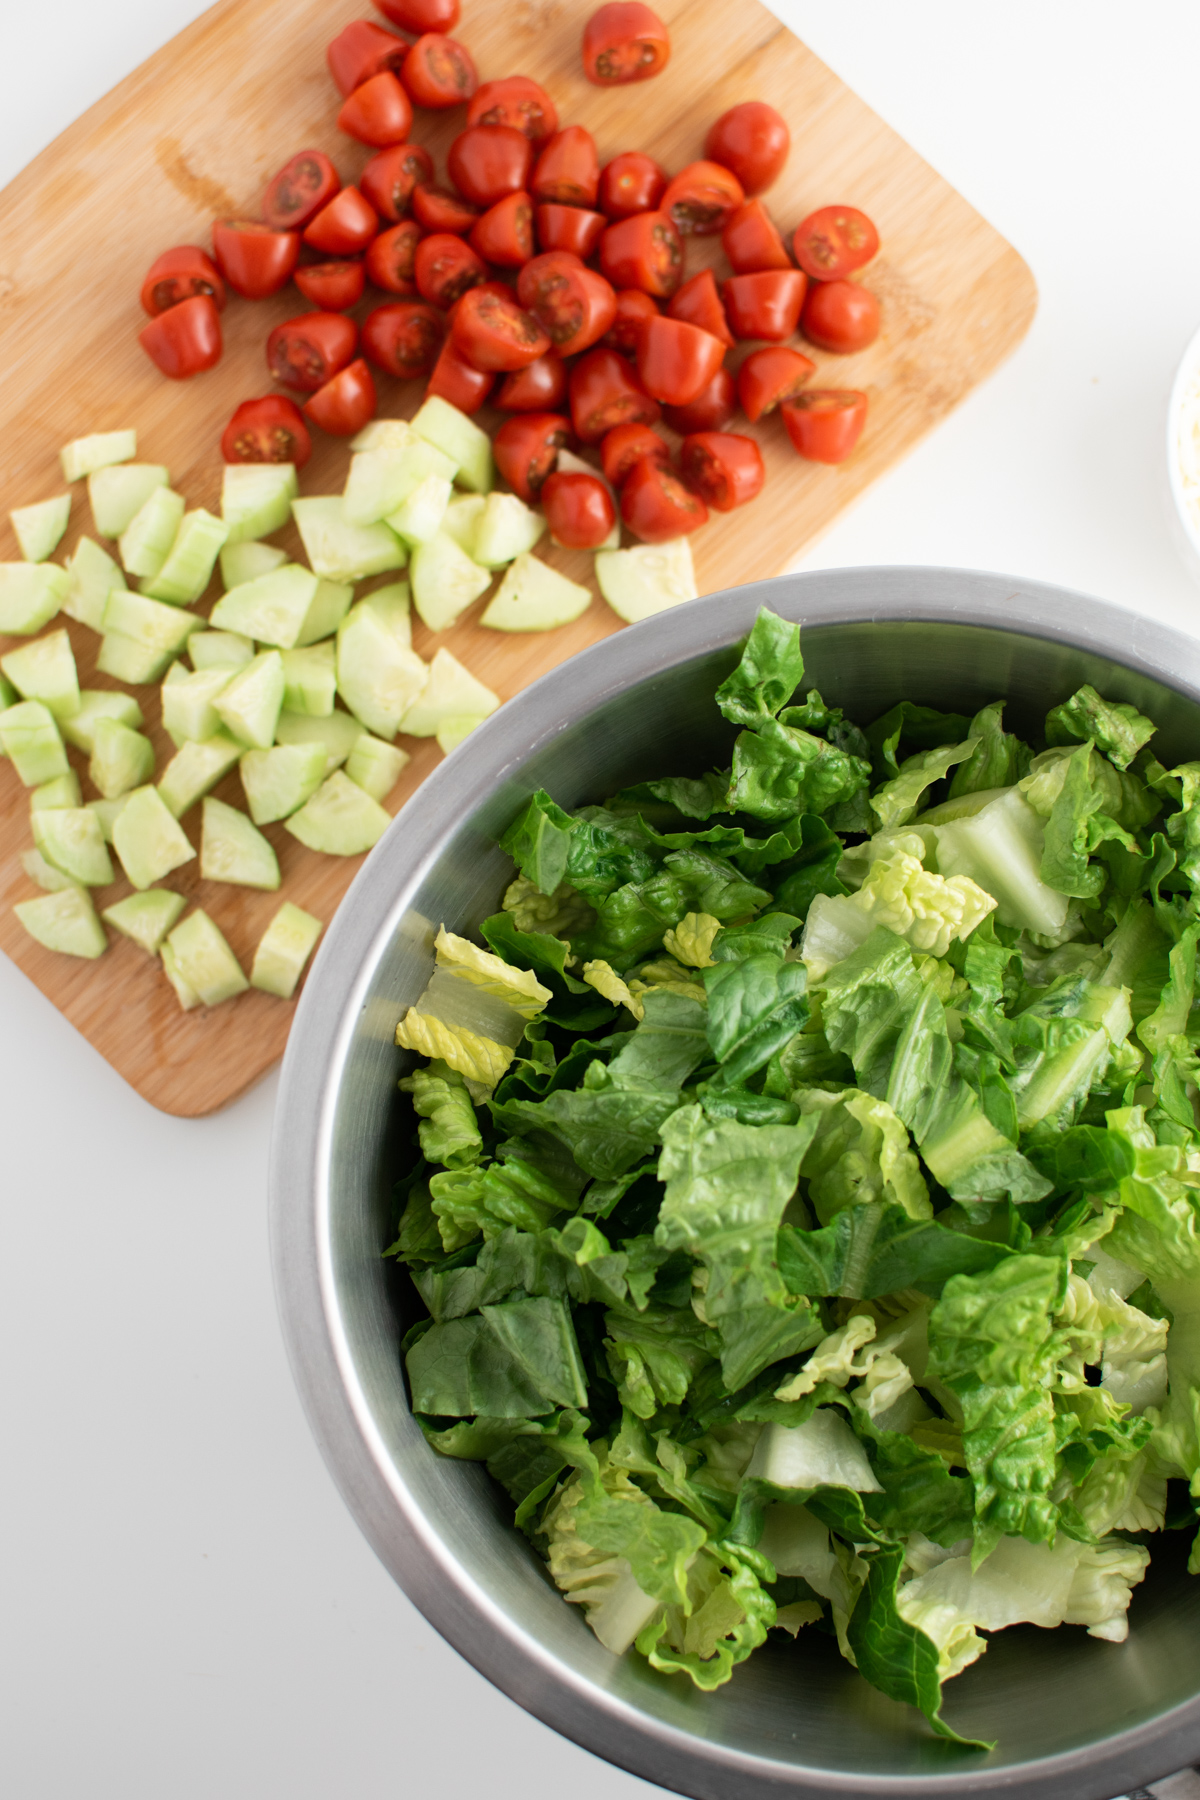 Chopped lettuce in metal mixing bowl next to chopped cucumbers and tomatoes on cutting board.